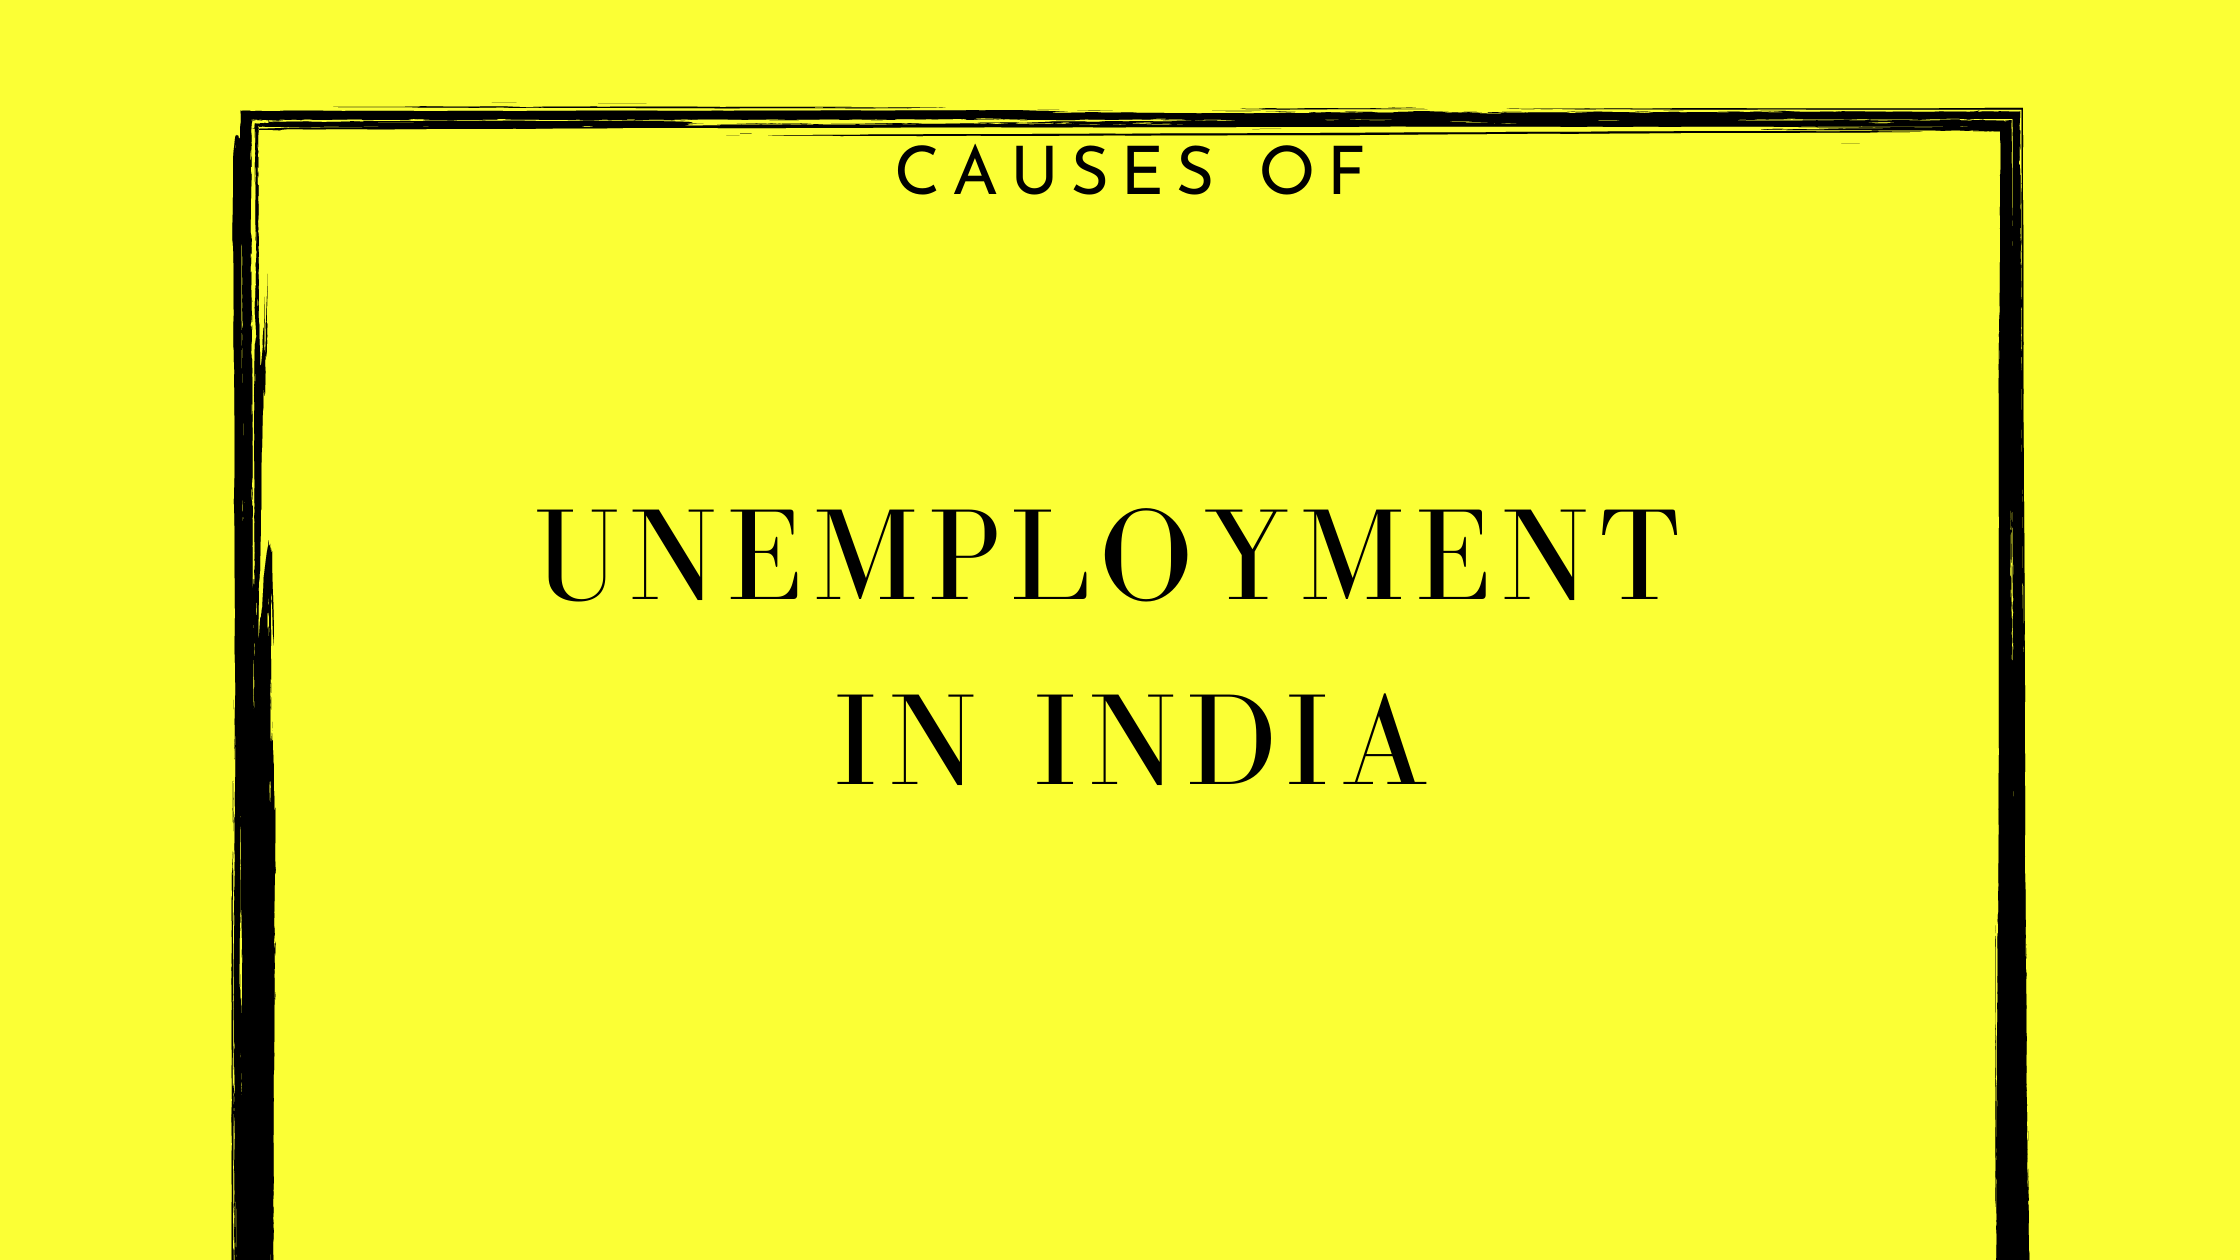 Causes of unemployment in India